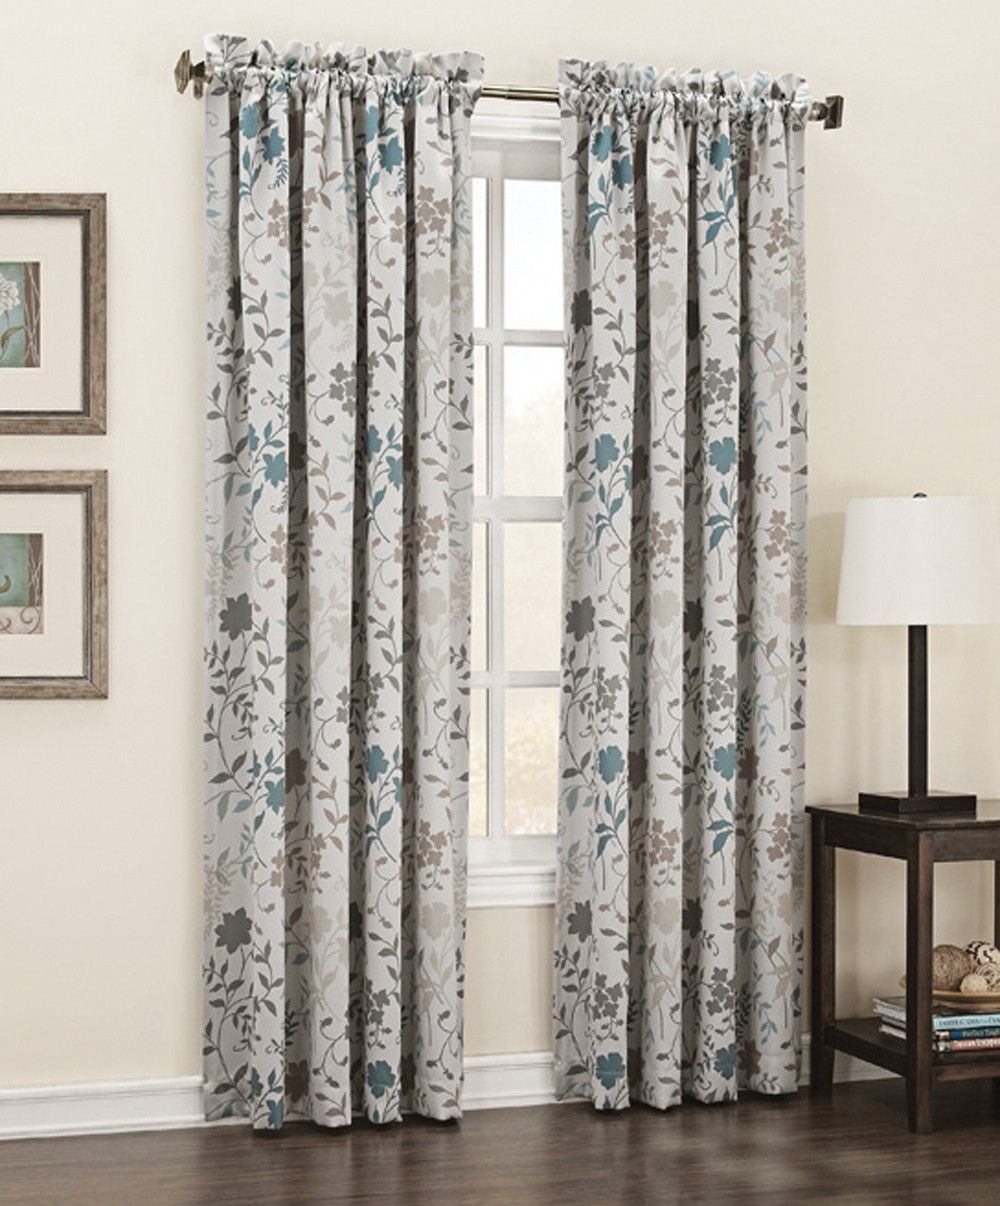 room darkening curtains ashlyn room darkening curtain panel | curtain u0026 bath outlet LLHNUWB